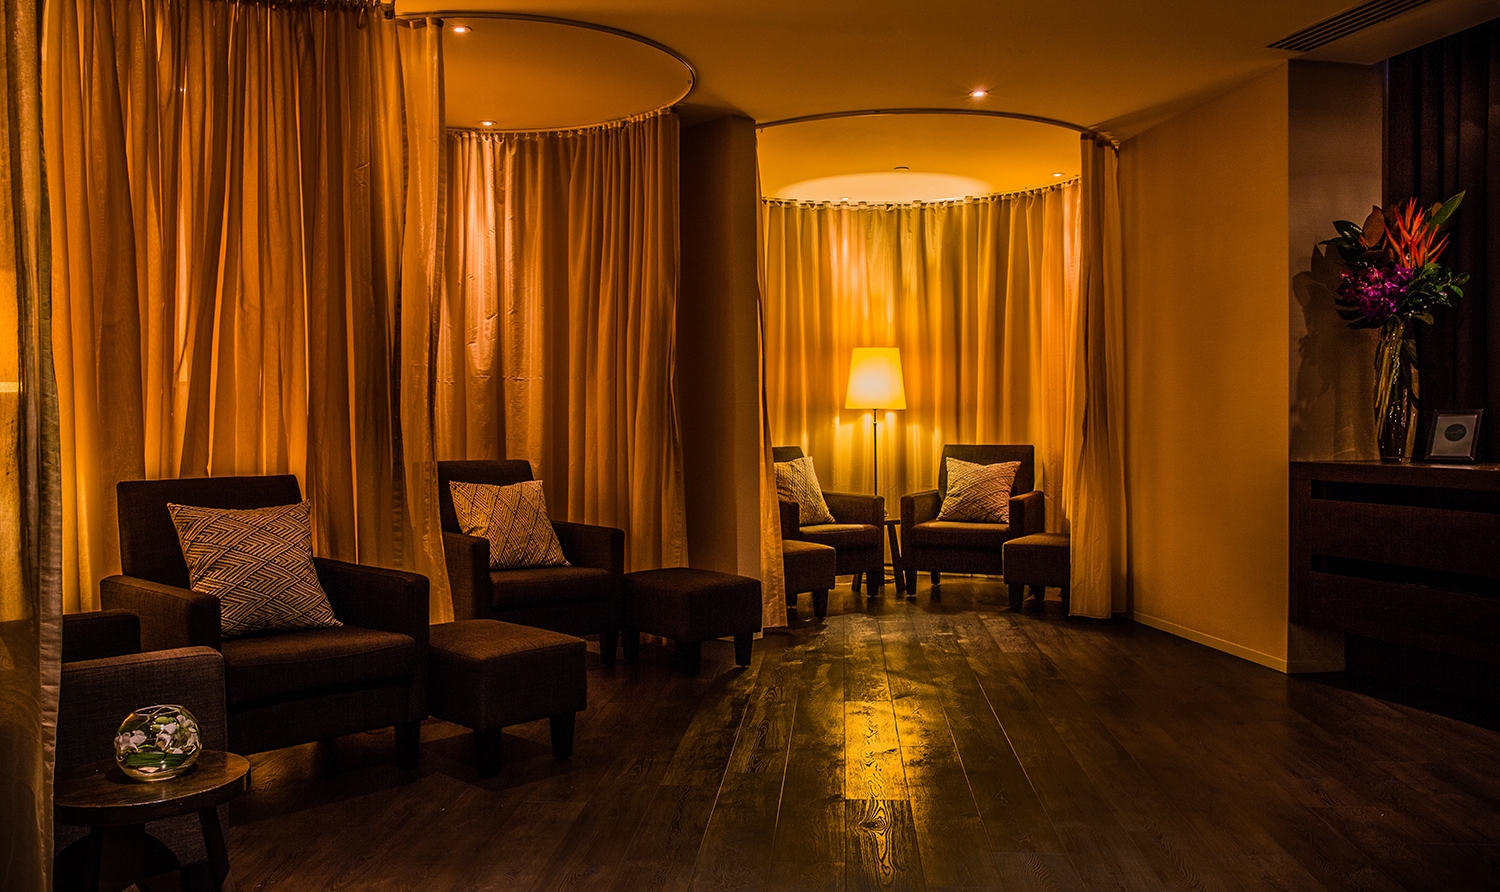 The spa's relaxation lounge.